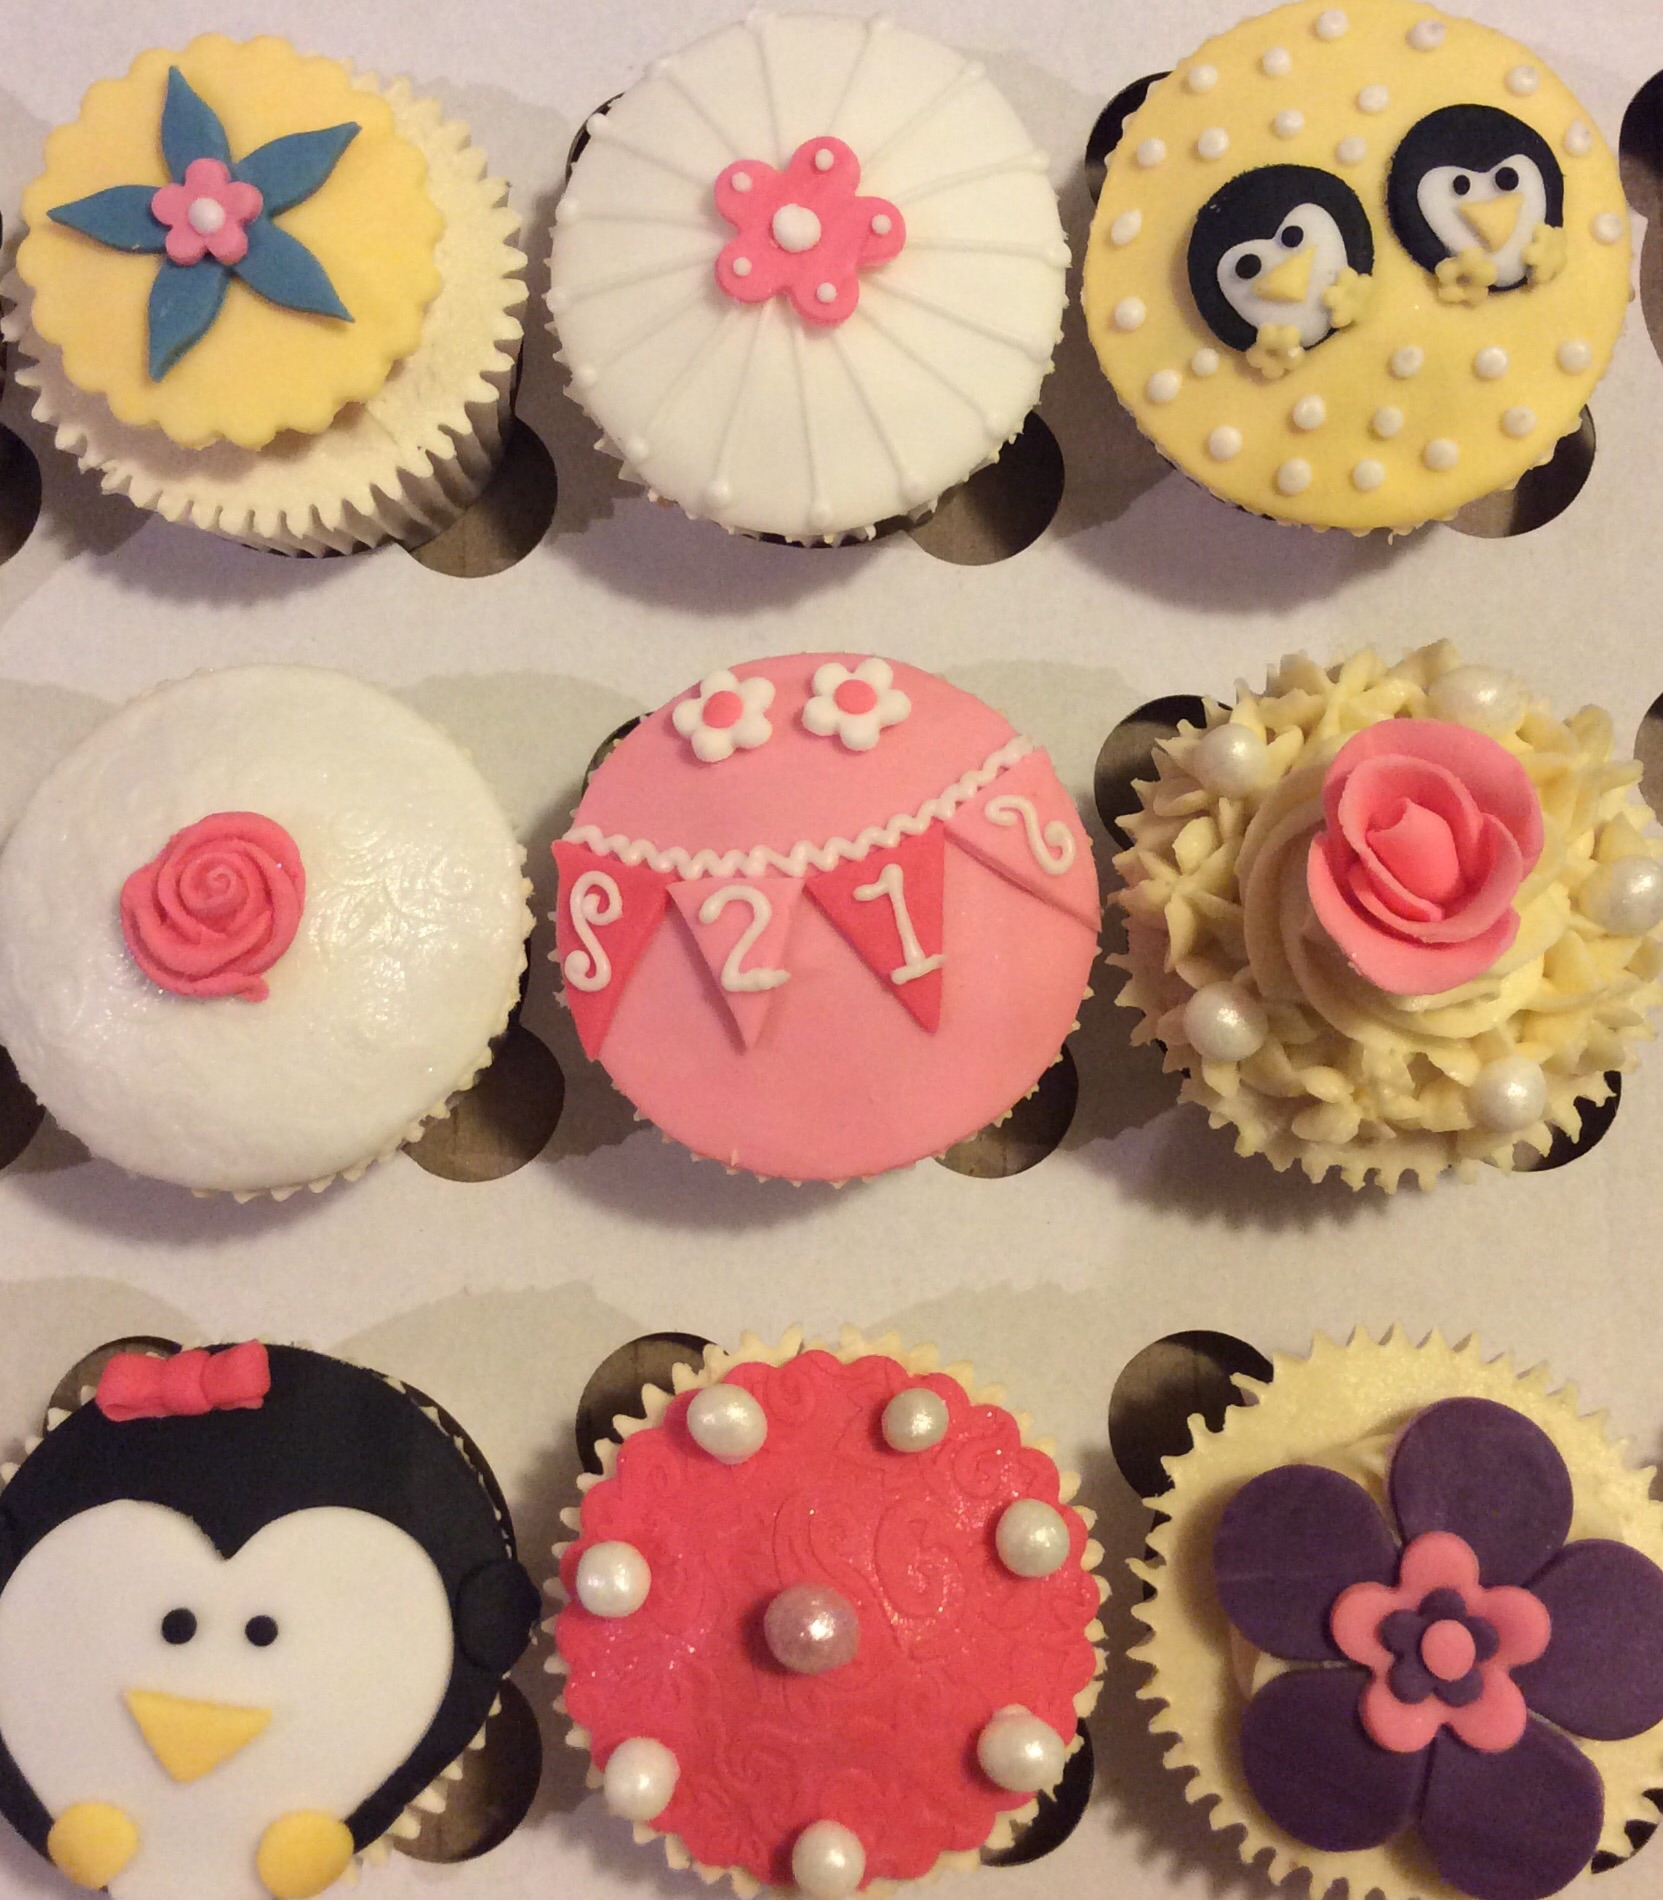 Pink, Purple and Penguin Cupcakes - CAKES BY LIZZIE, EDINBURGH